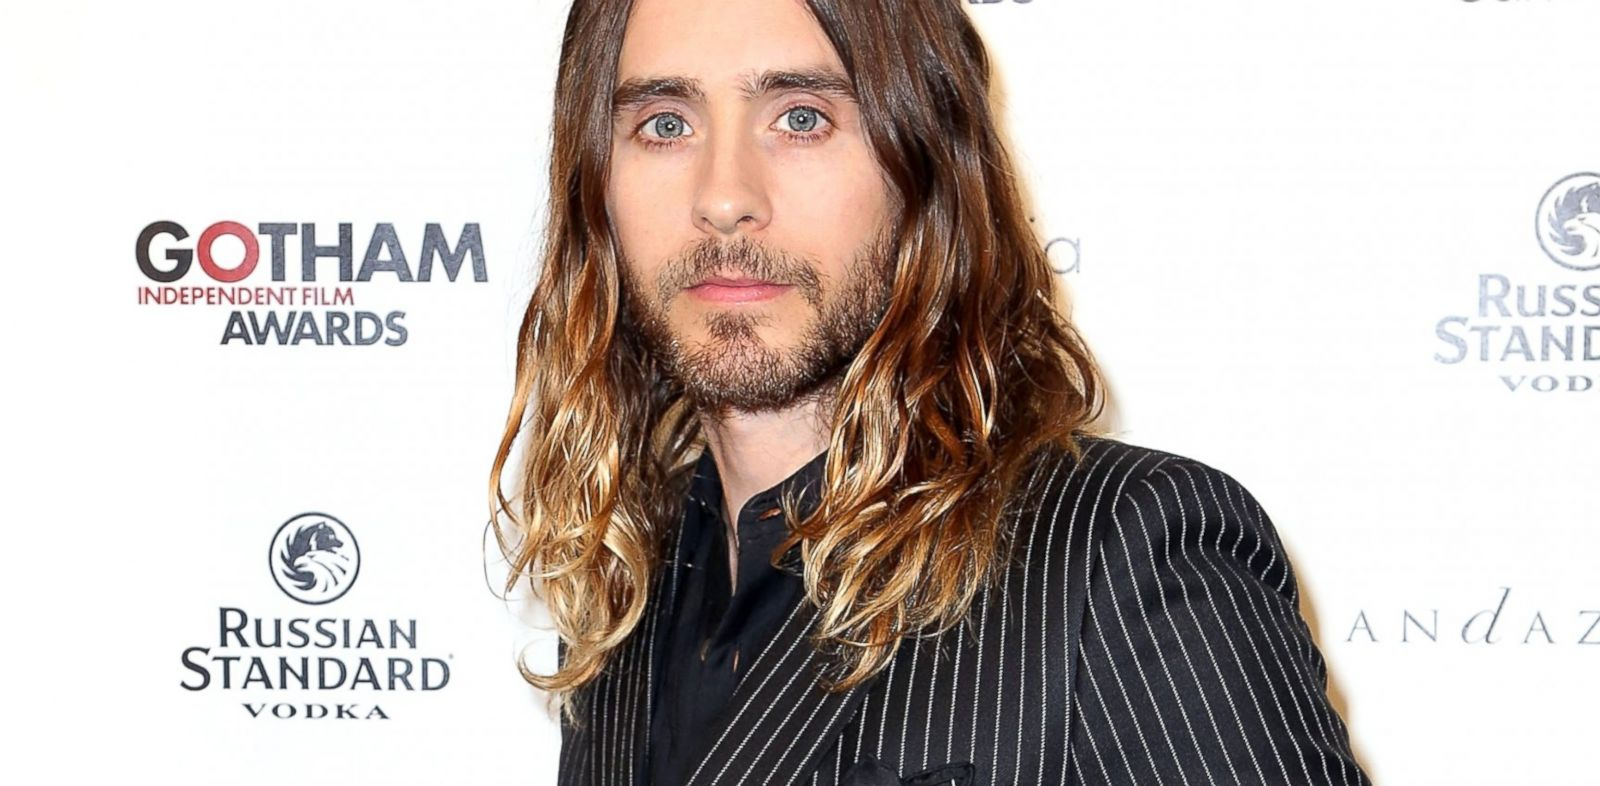 PHOTO: Jared Leto attends the 23rd annual Gotham Independent Film Awards at Cipriani Wall Street in New York, Dec. 2, 2013.